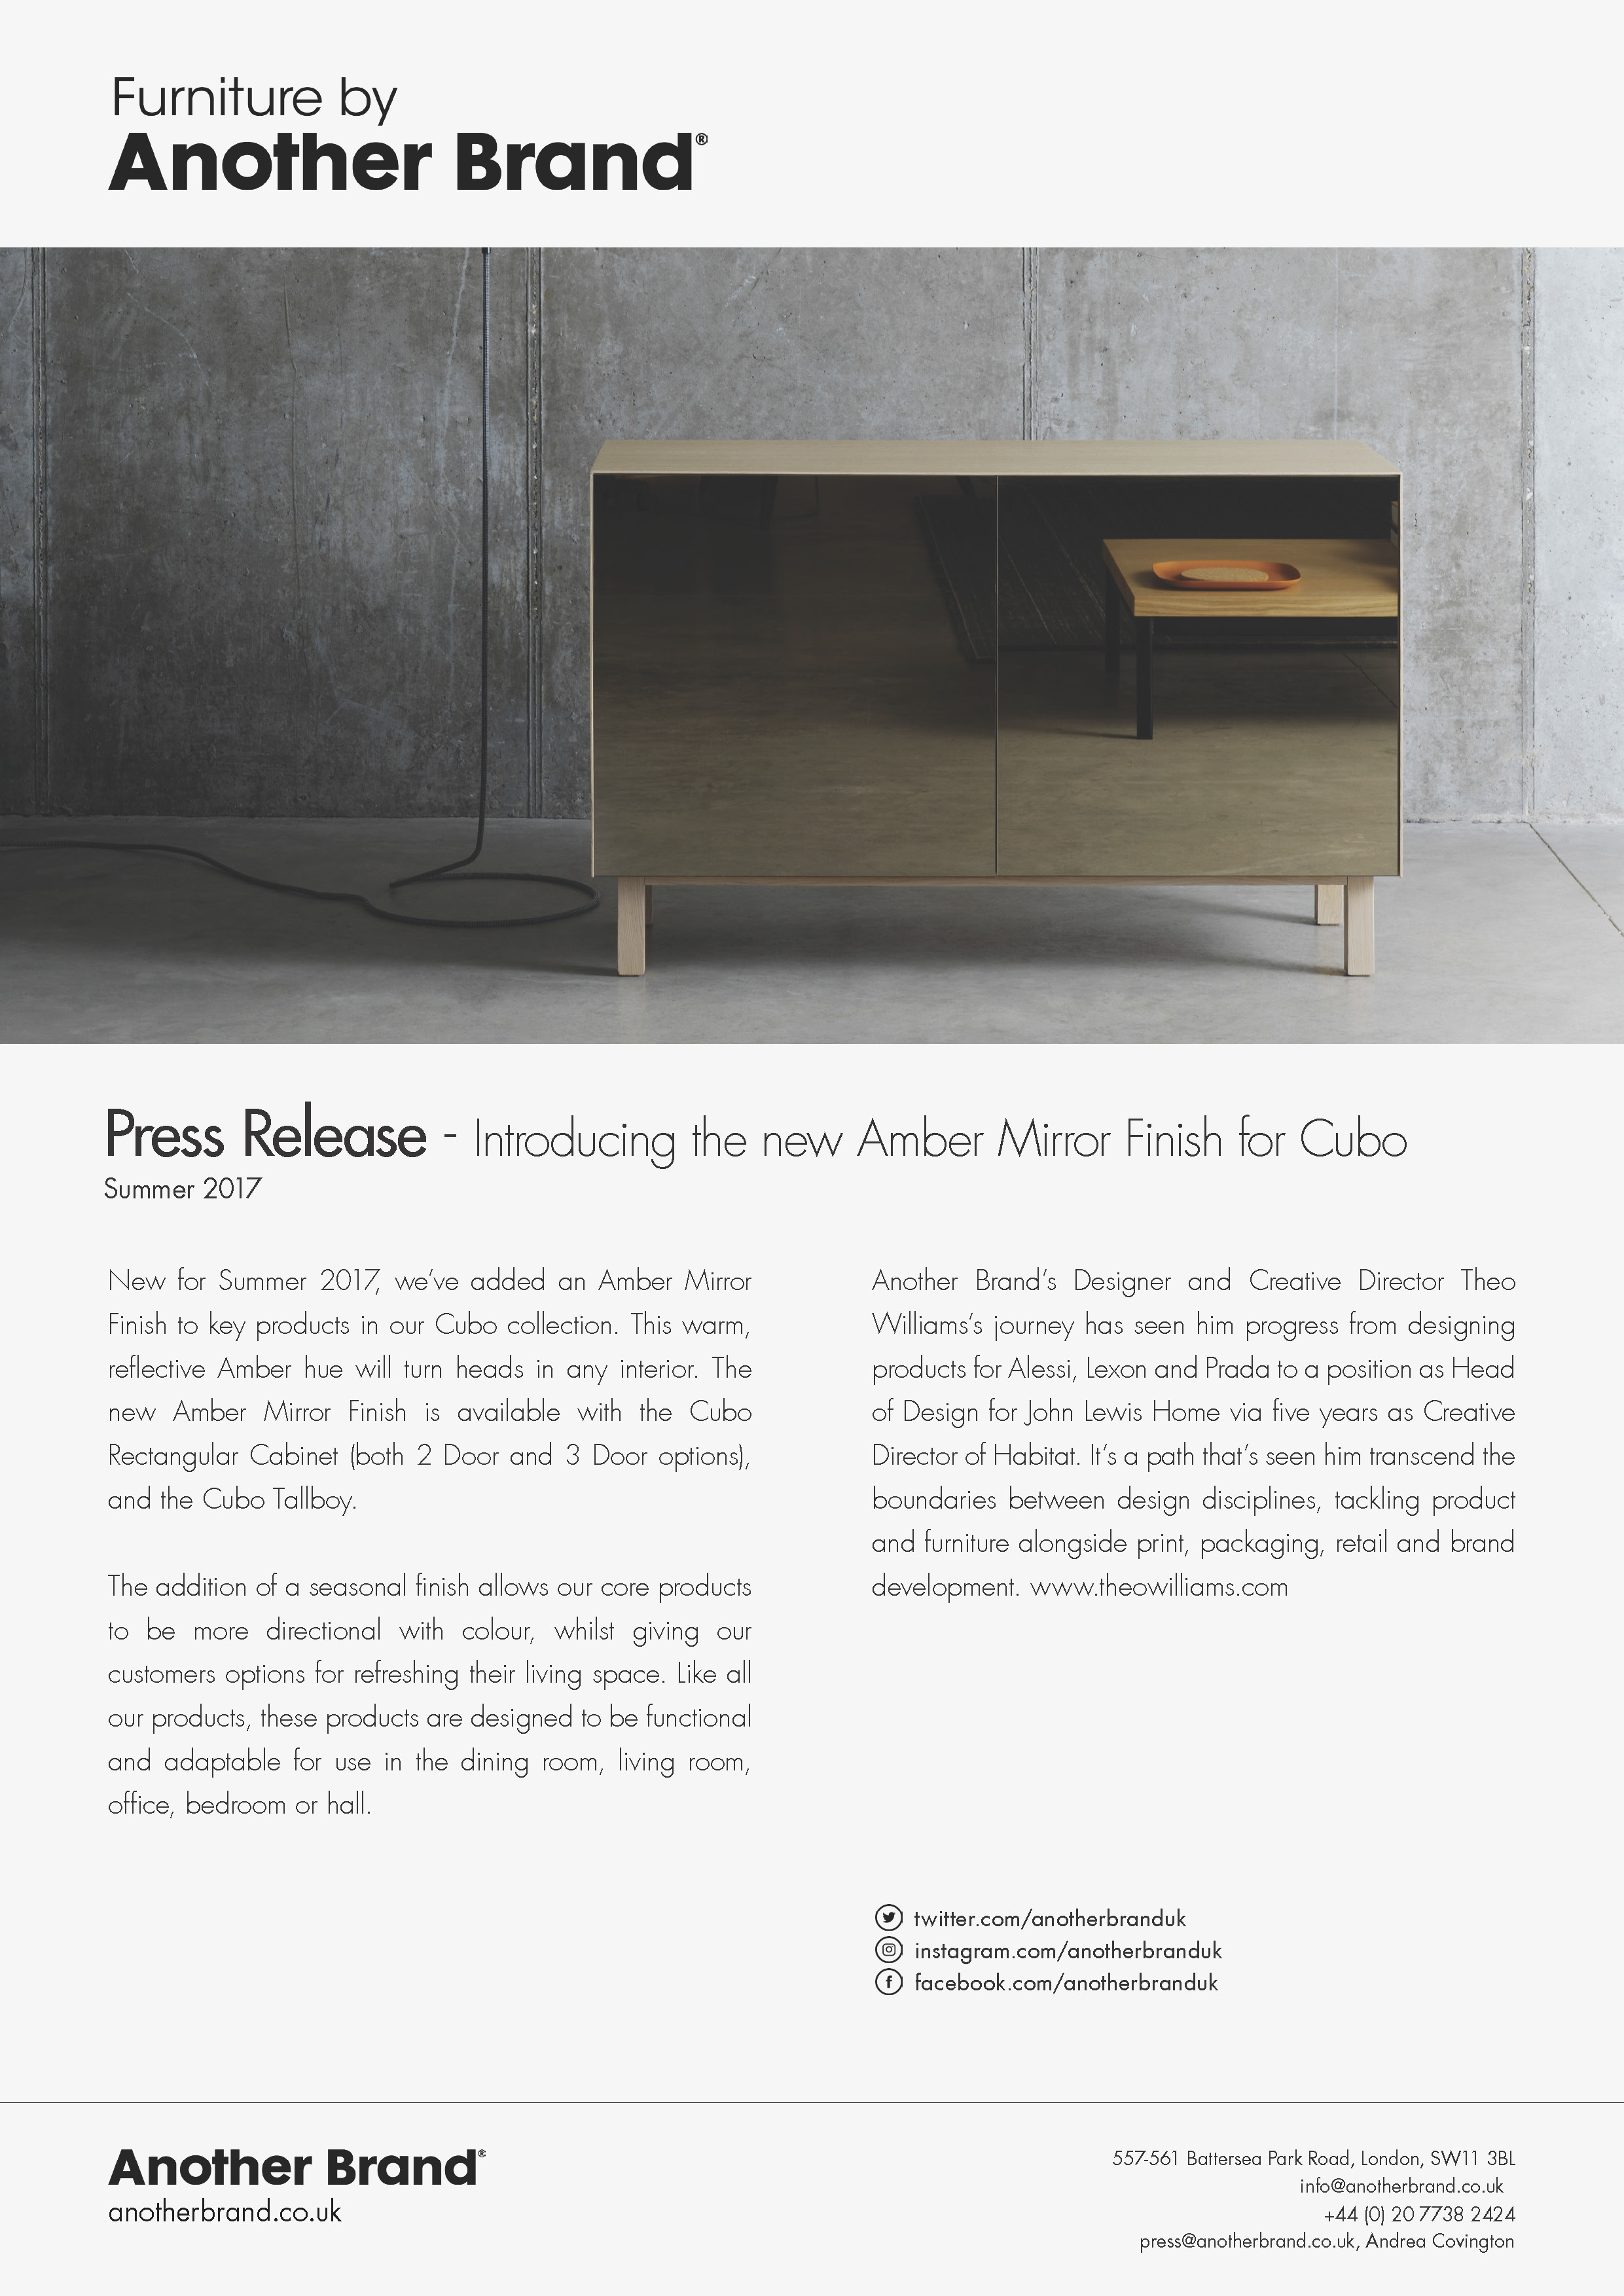 Introducing the Amber Mirror Finish for Cubo